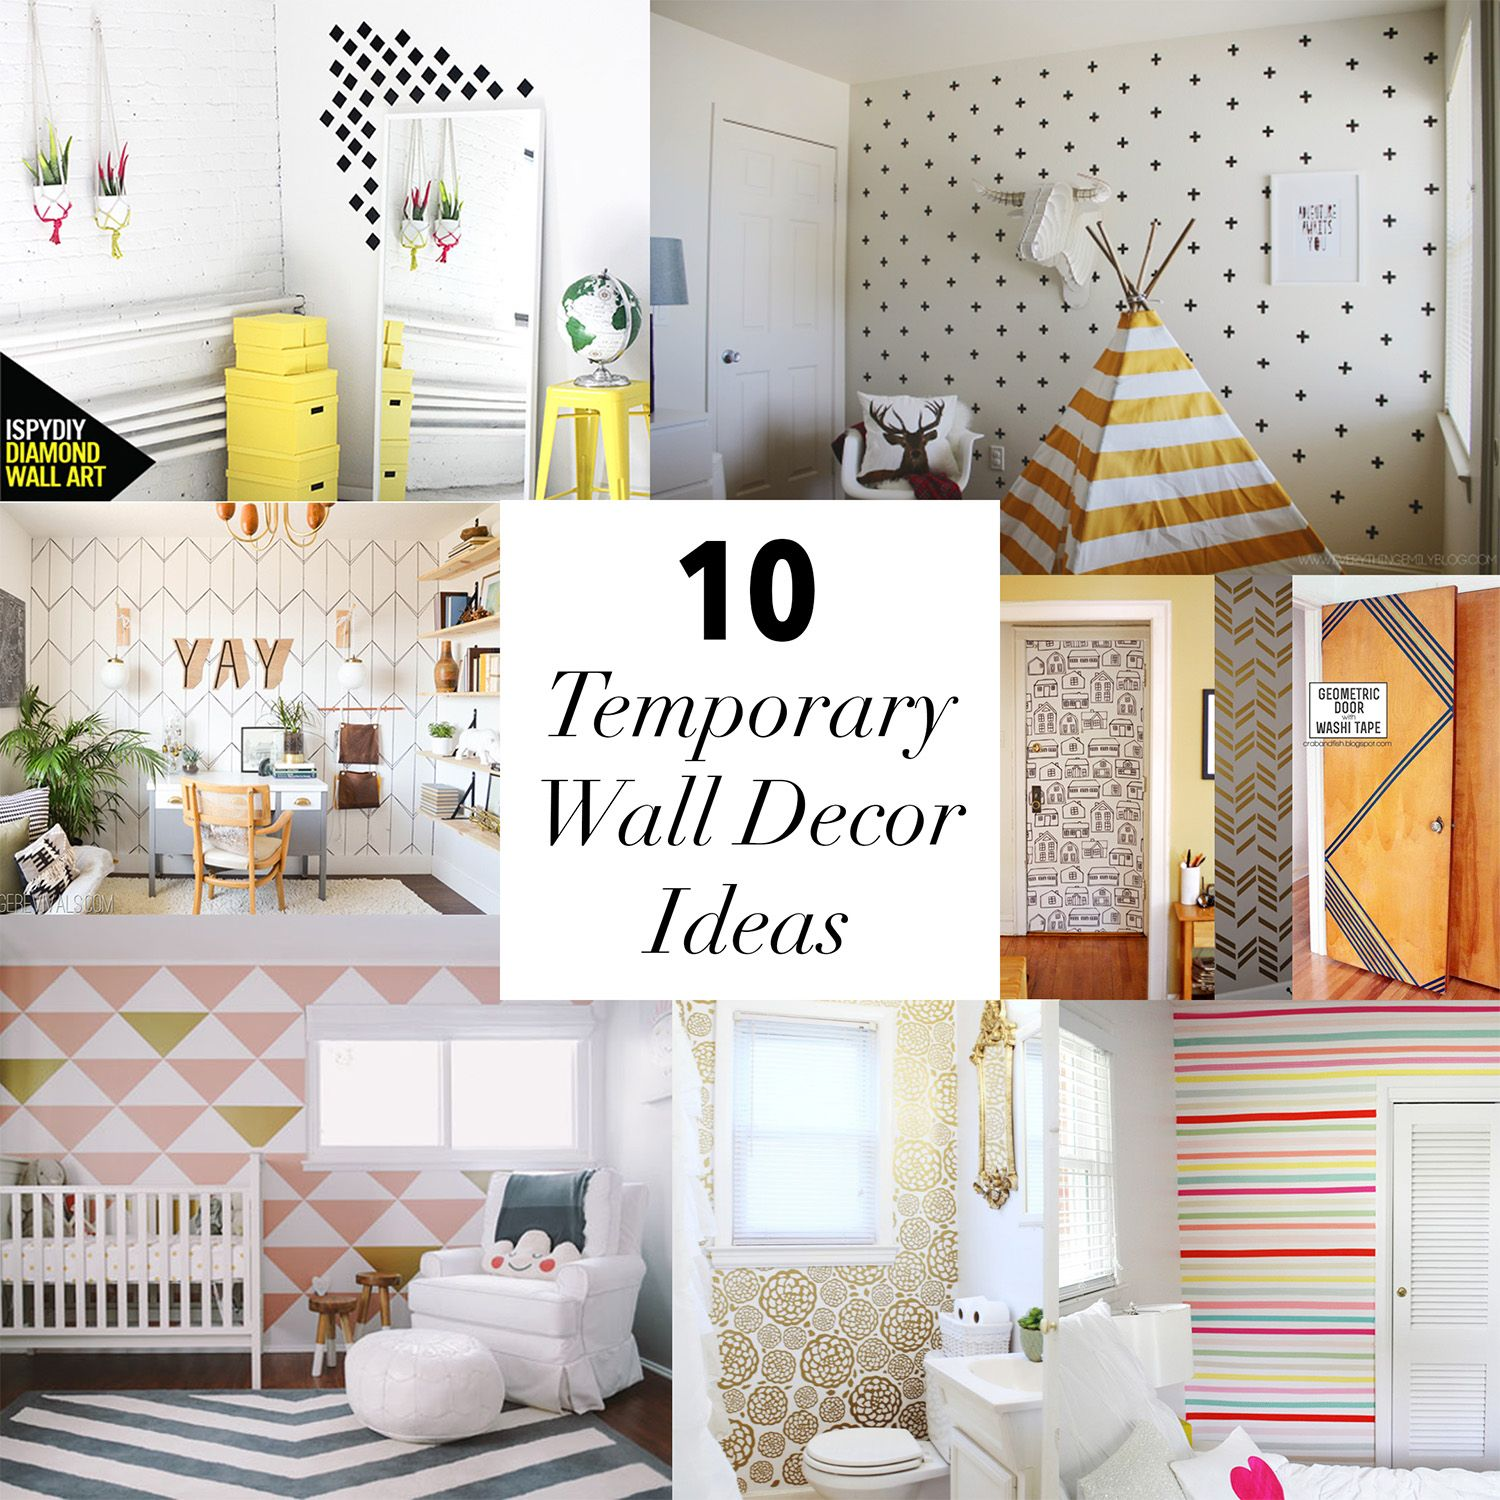 10 Temporary Wall Decor Ideas // Www.thelovelythings.com